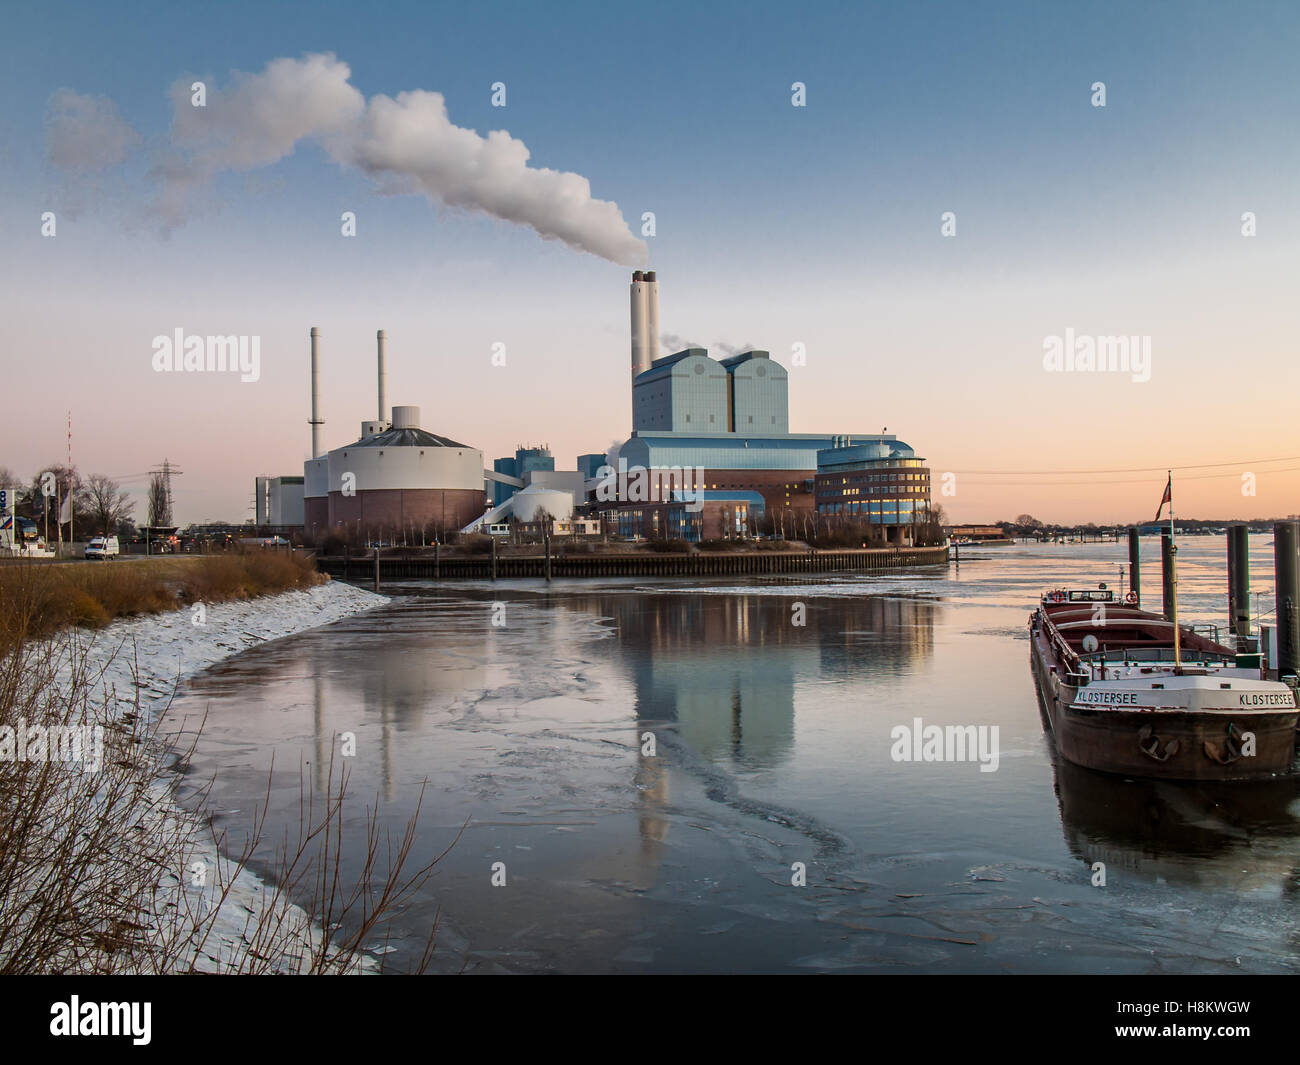 Vattenfall coal-fired power plant Tiefstack at the Elbe in  Hamburg, Germany.. - Stock Image